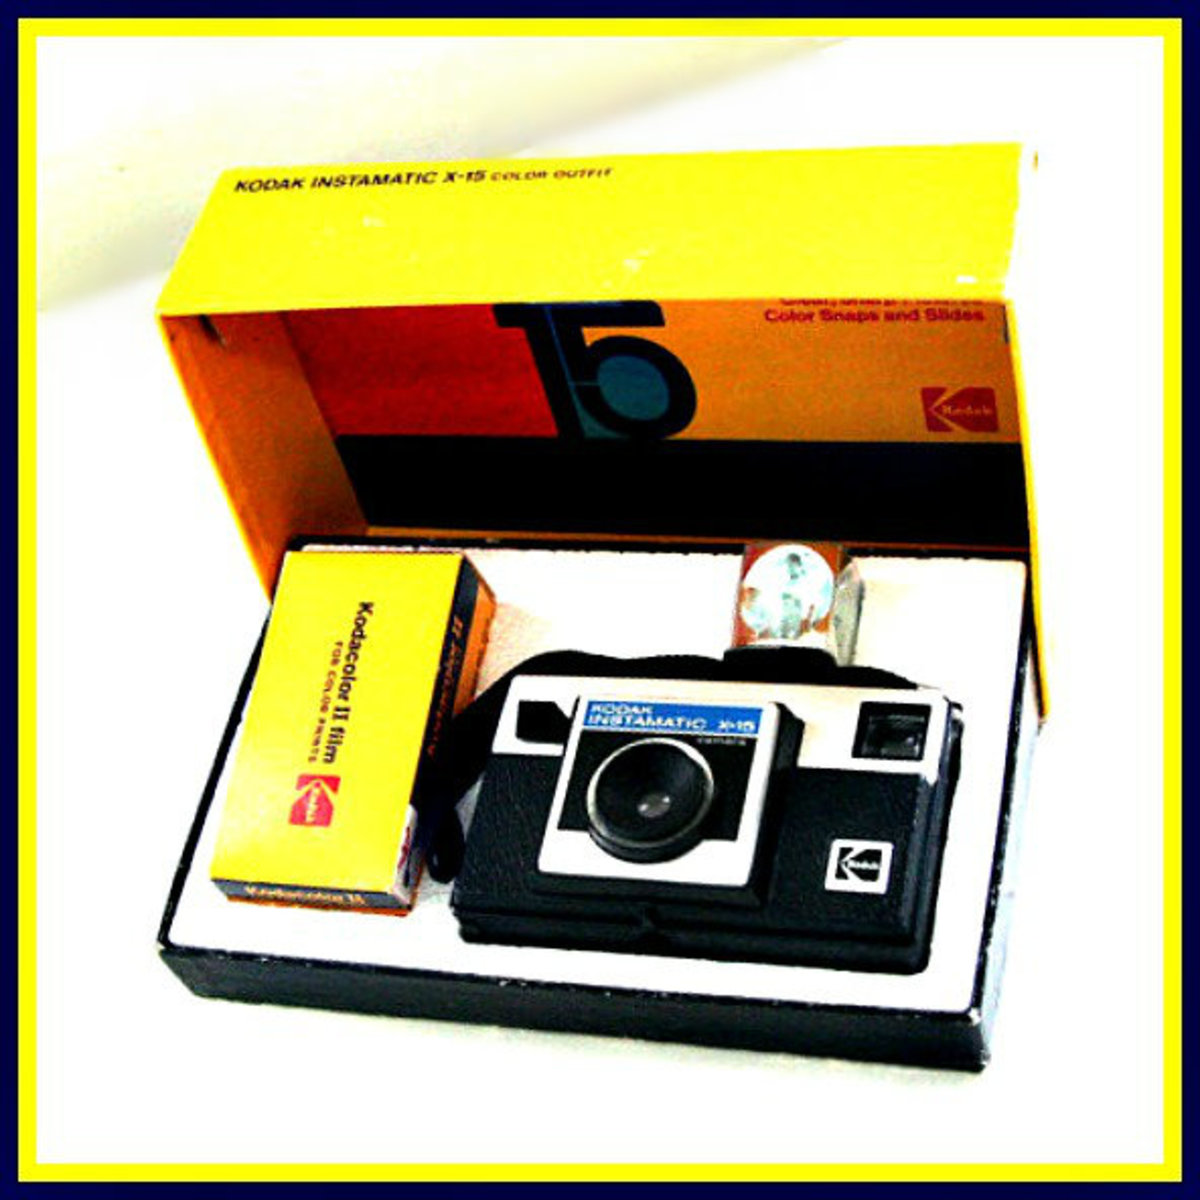 In they year 1970 the priced for this camera with accessories was $21.00, it came in a wonderful back and mustard color box with a roll of Kodak 126 film, instructions, and a flash cube already mounted to the camera.